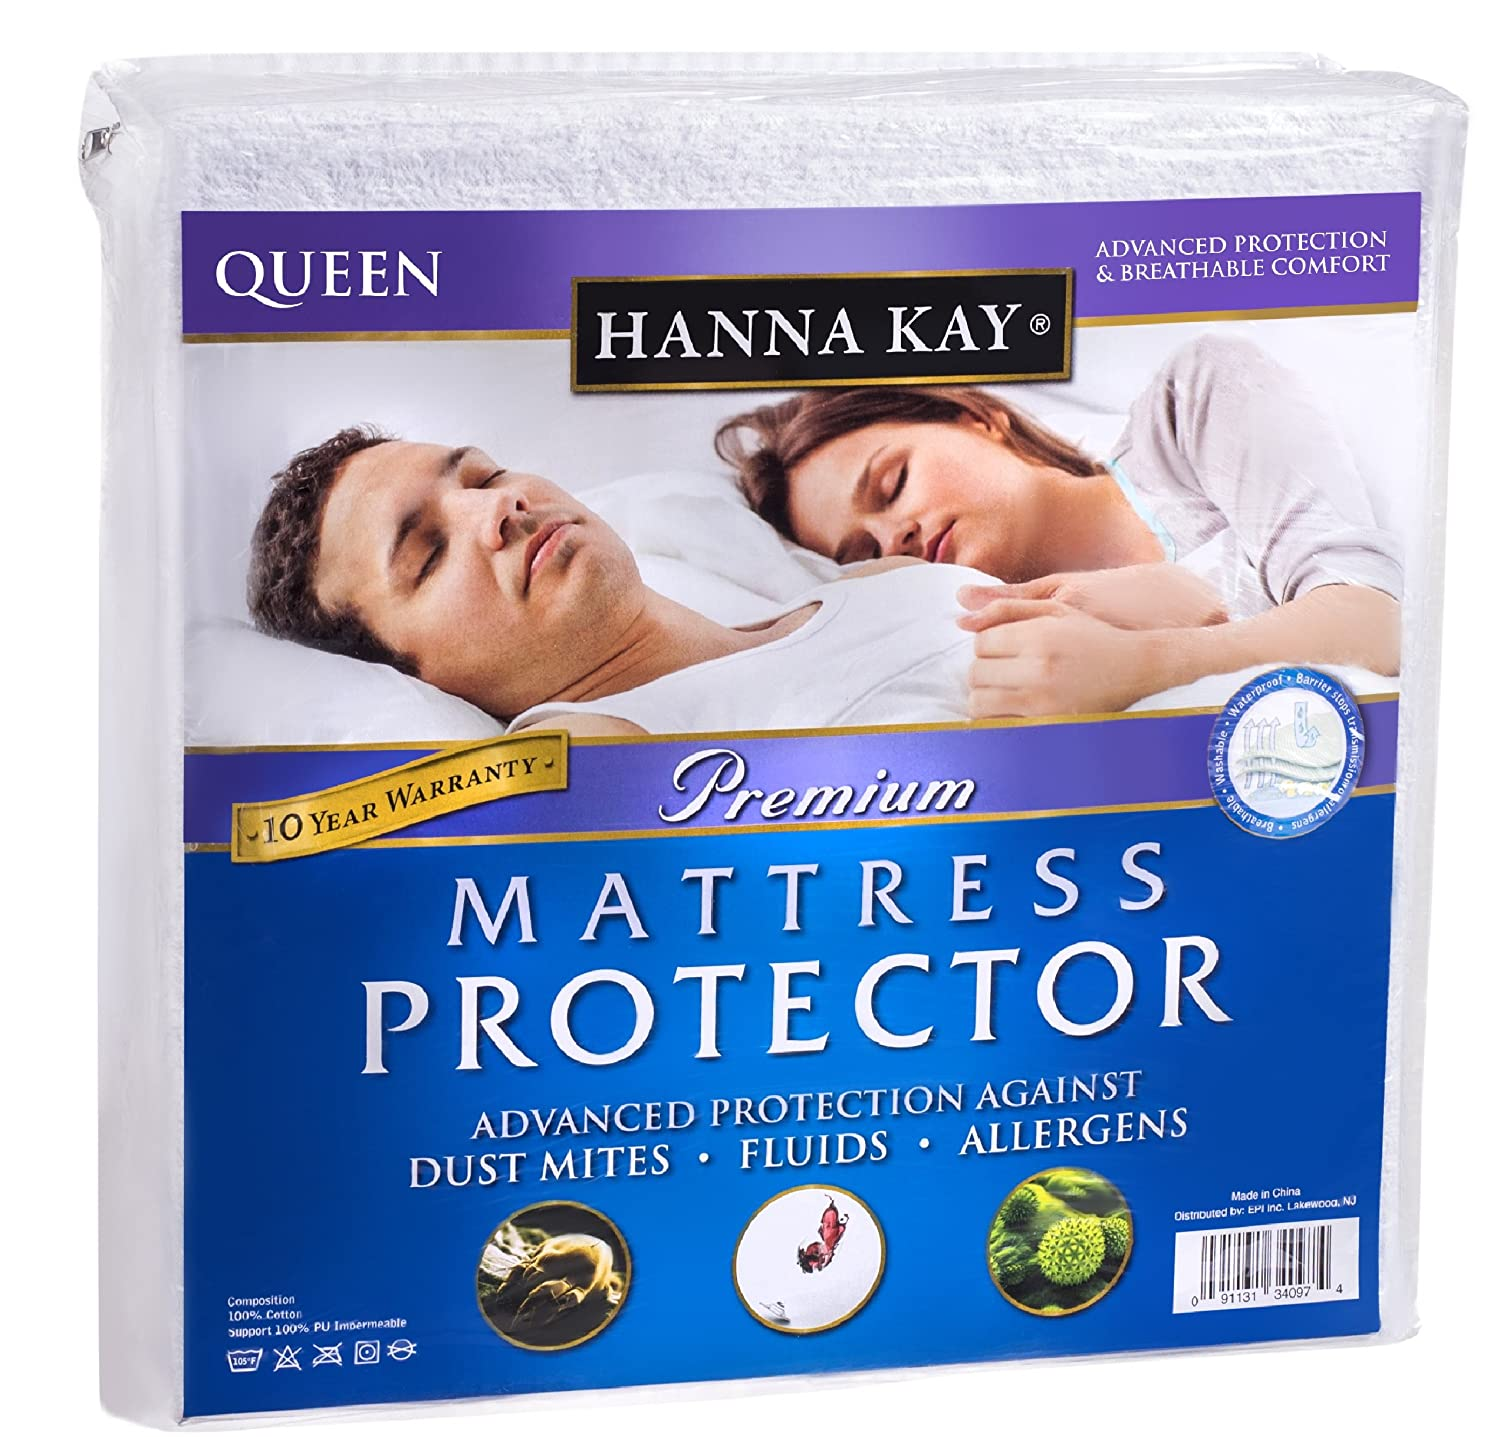 You should wash the mattress protector before you can start using it. Get  this mattress protector today to start enjoying restful night's sleep.